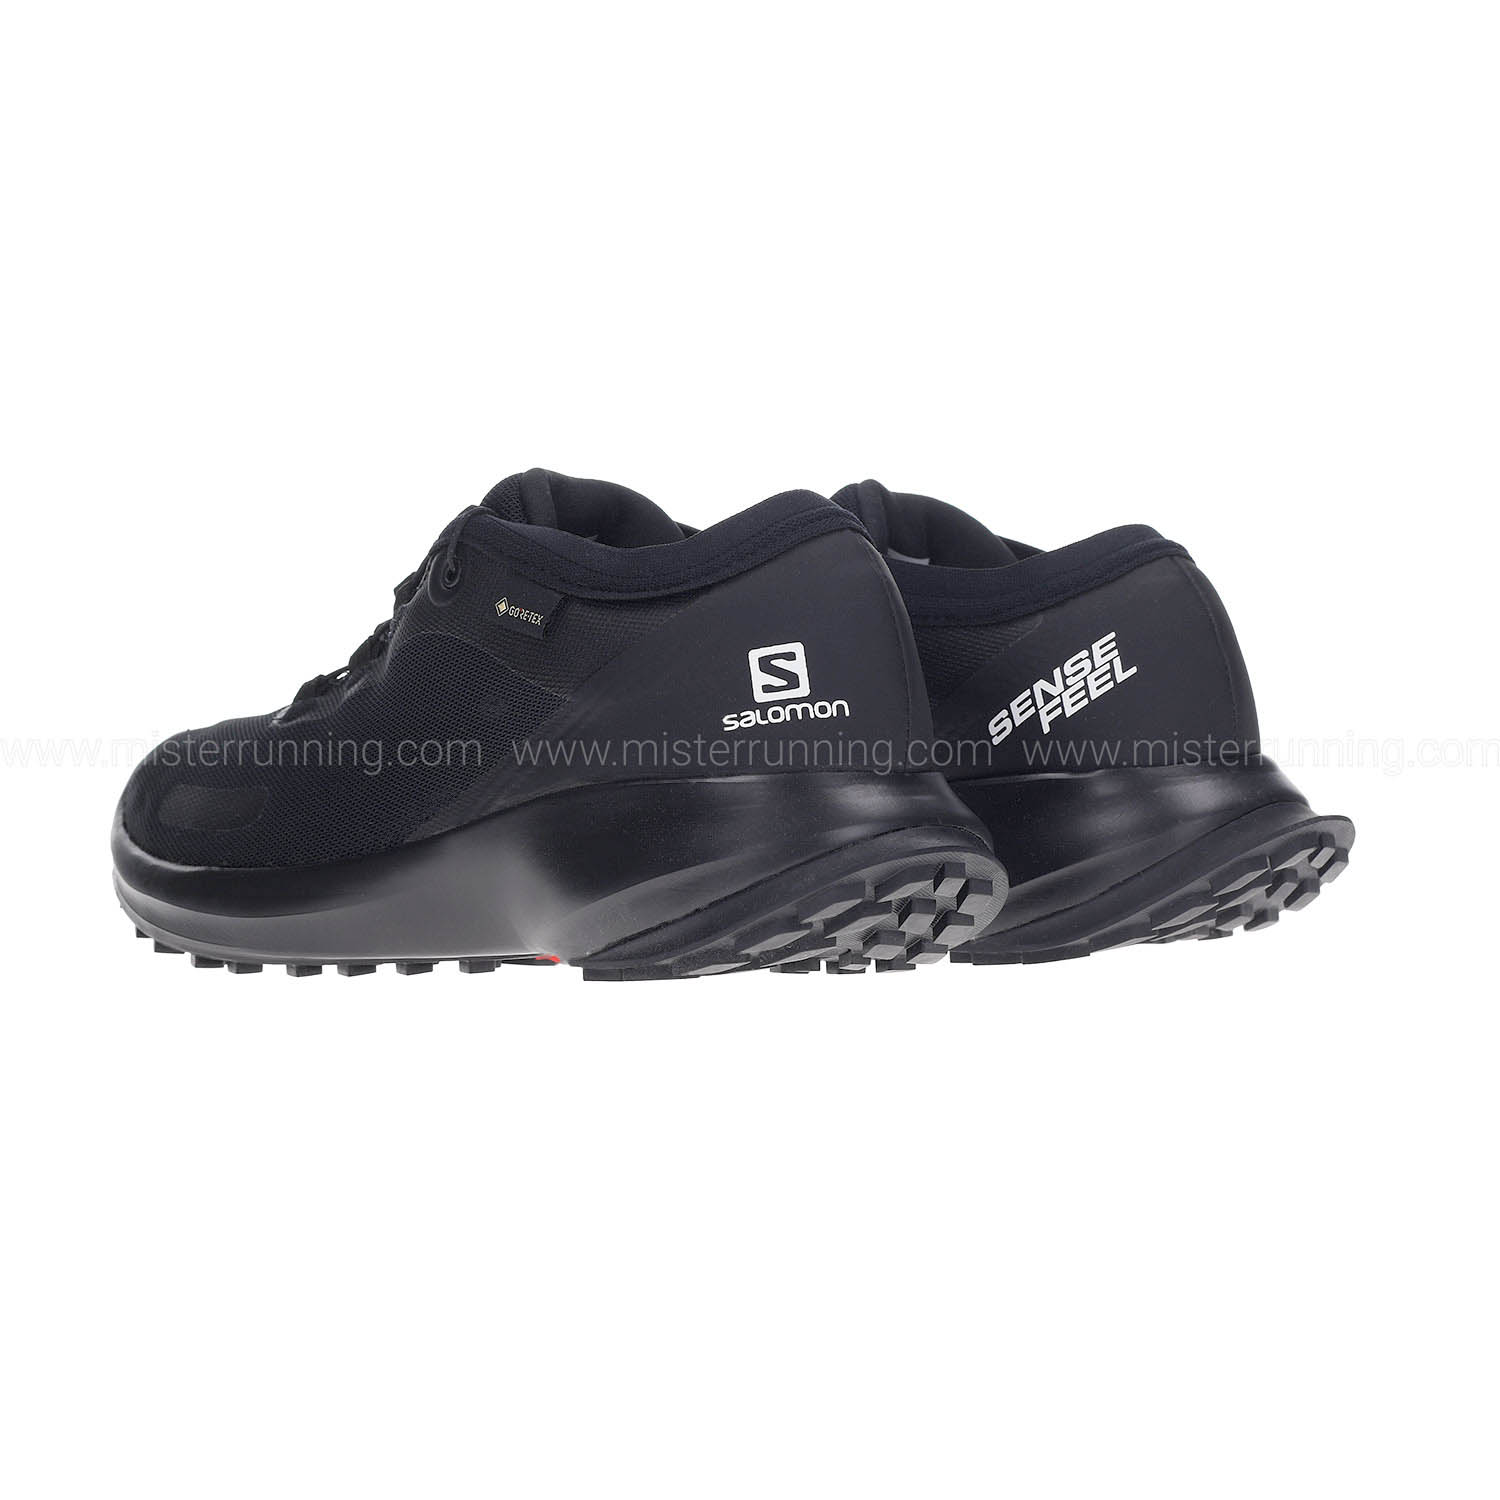 Salomon Sense Feel GTX - Black